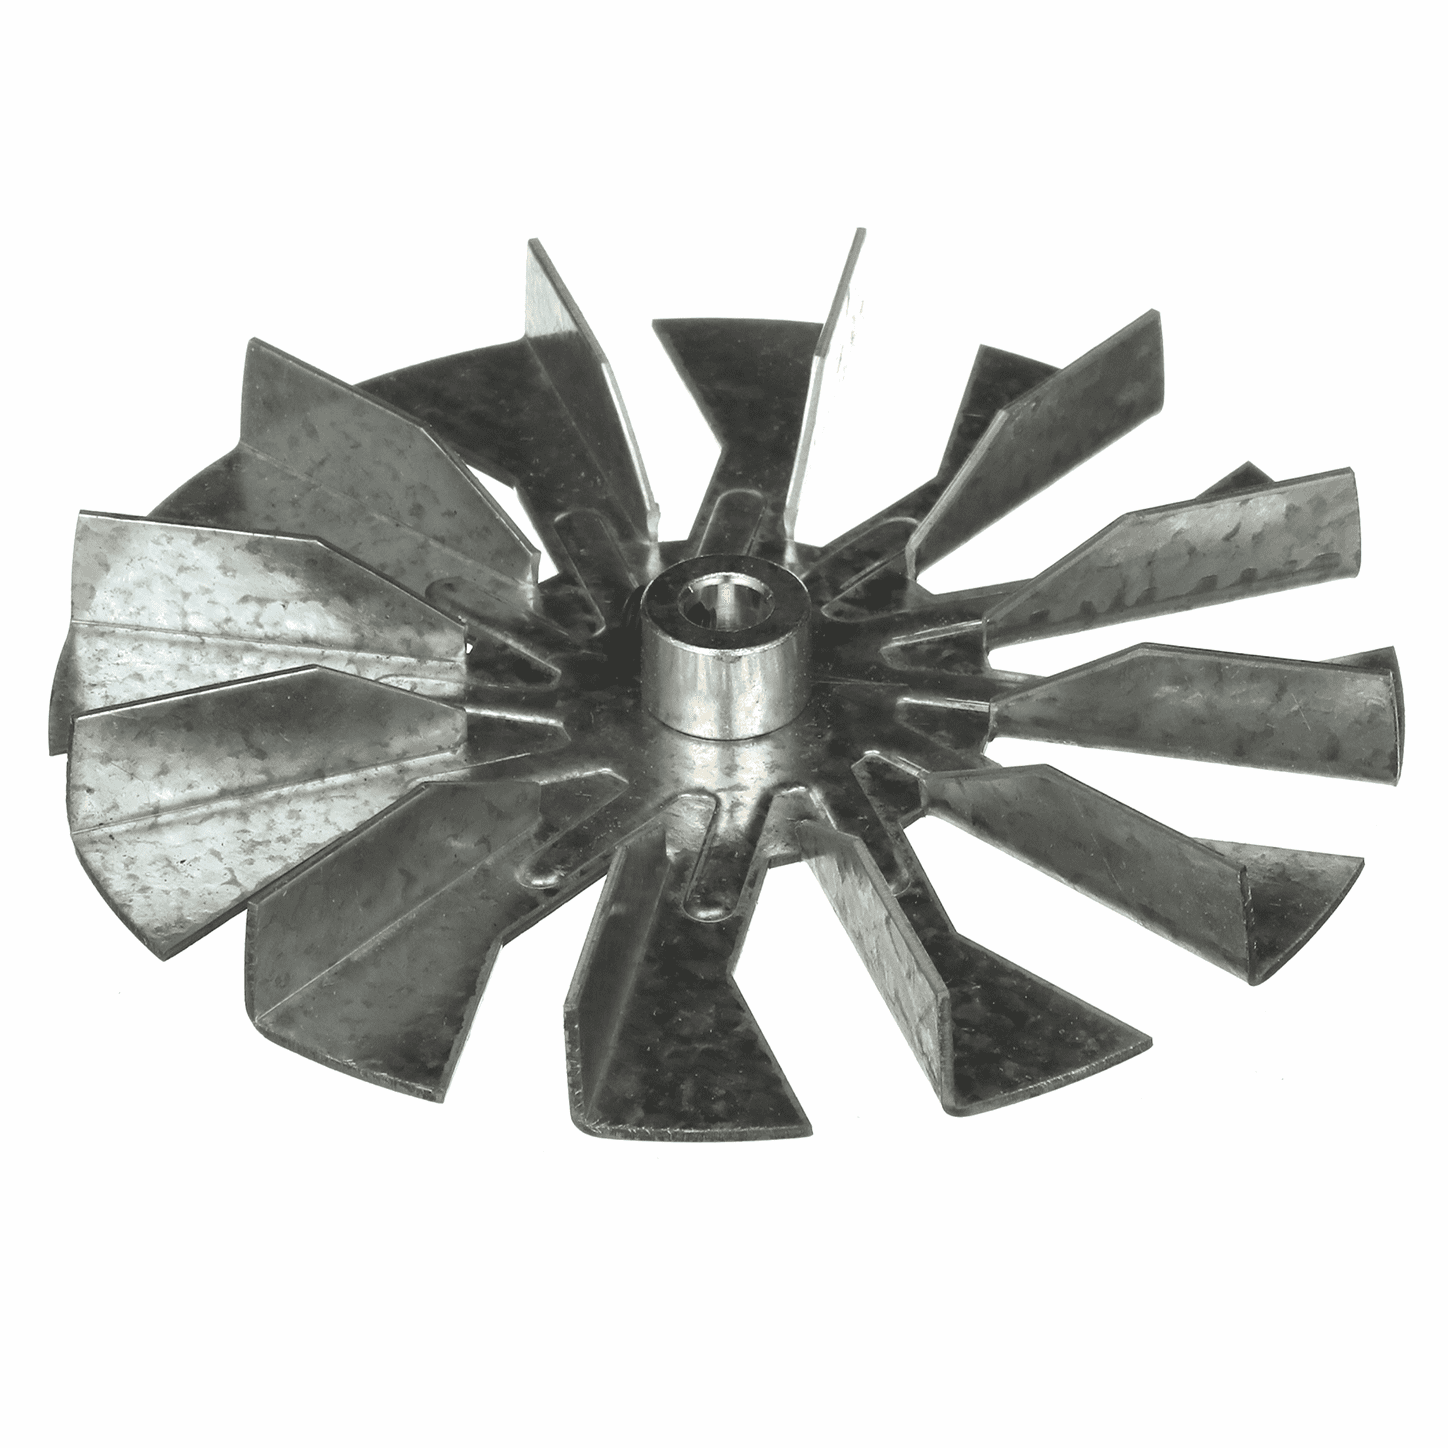 "Harman 5"" Single Paddle Blade Impeller for Many Models, 3-20-40985"